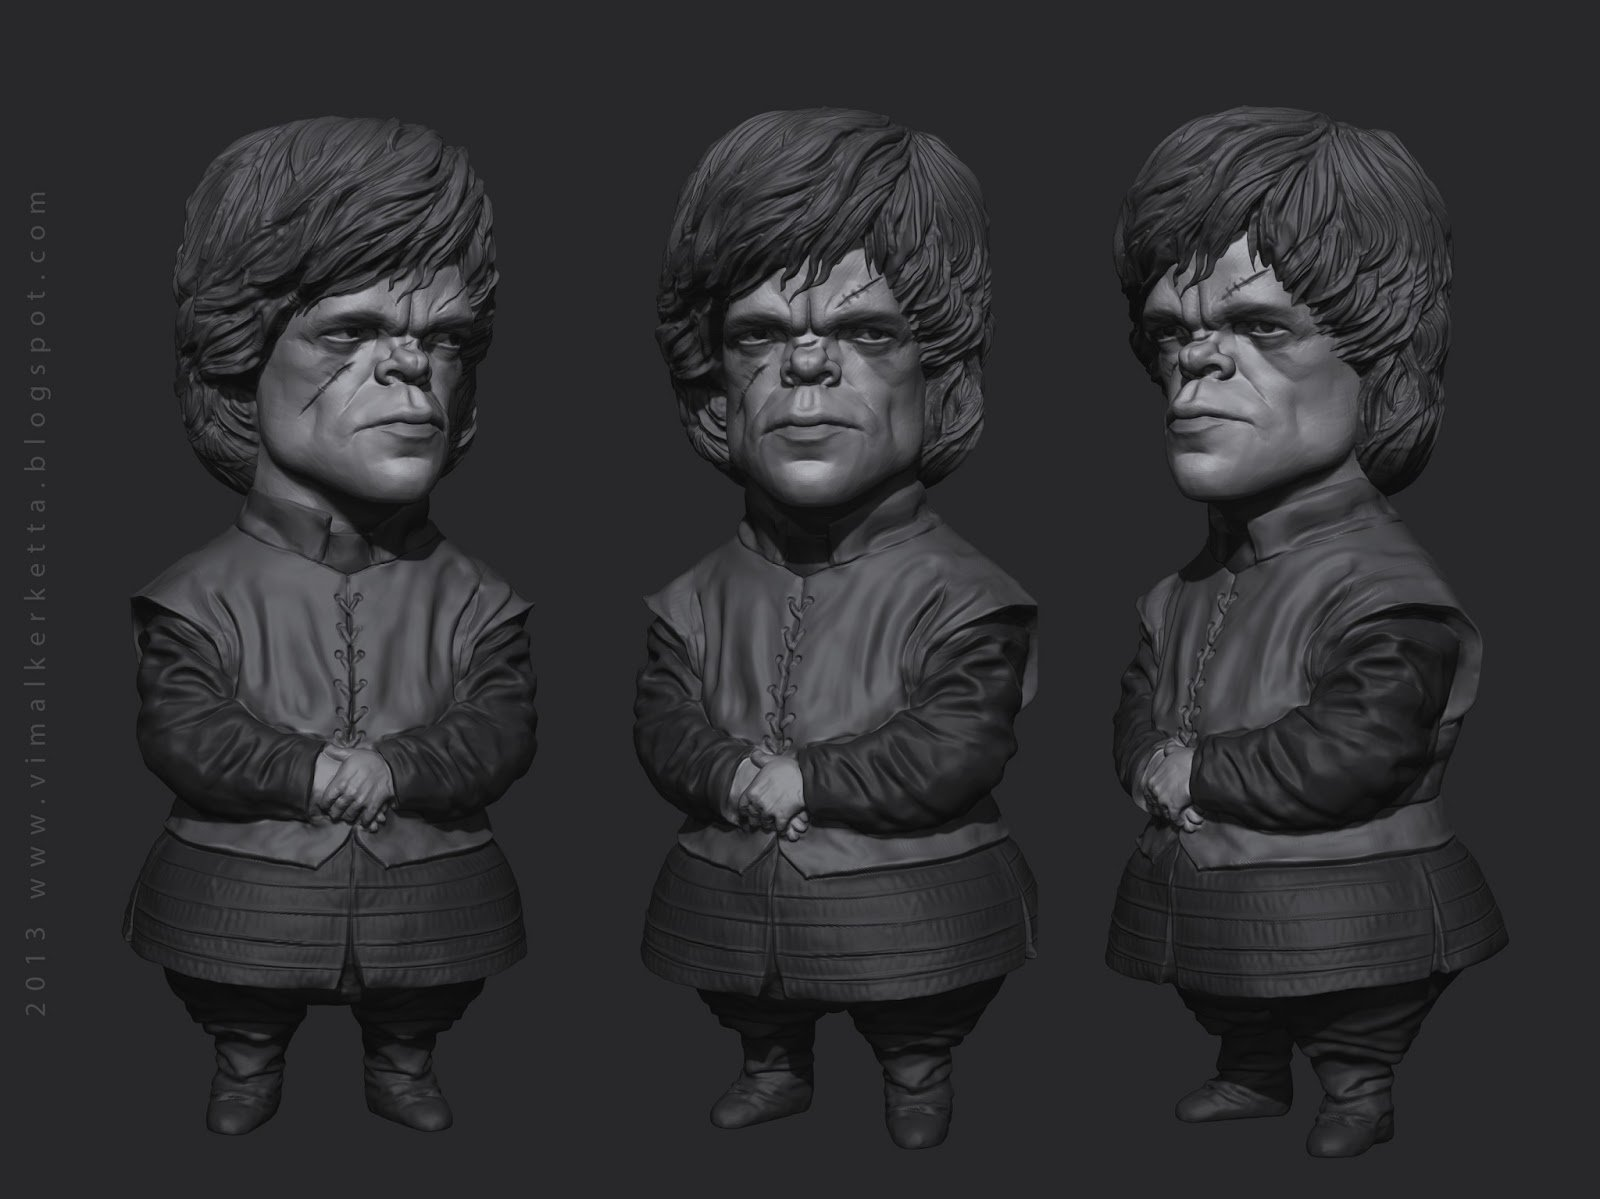 Tyrion Lannister - Caricature Sketch